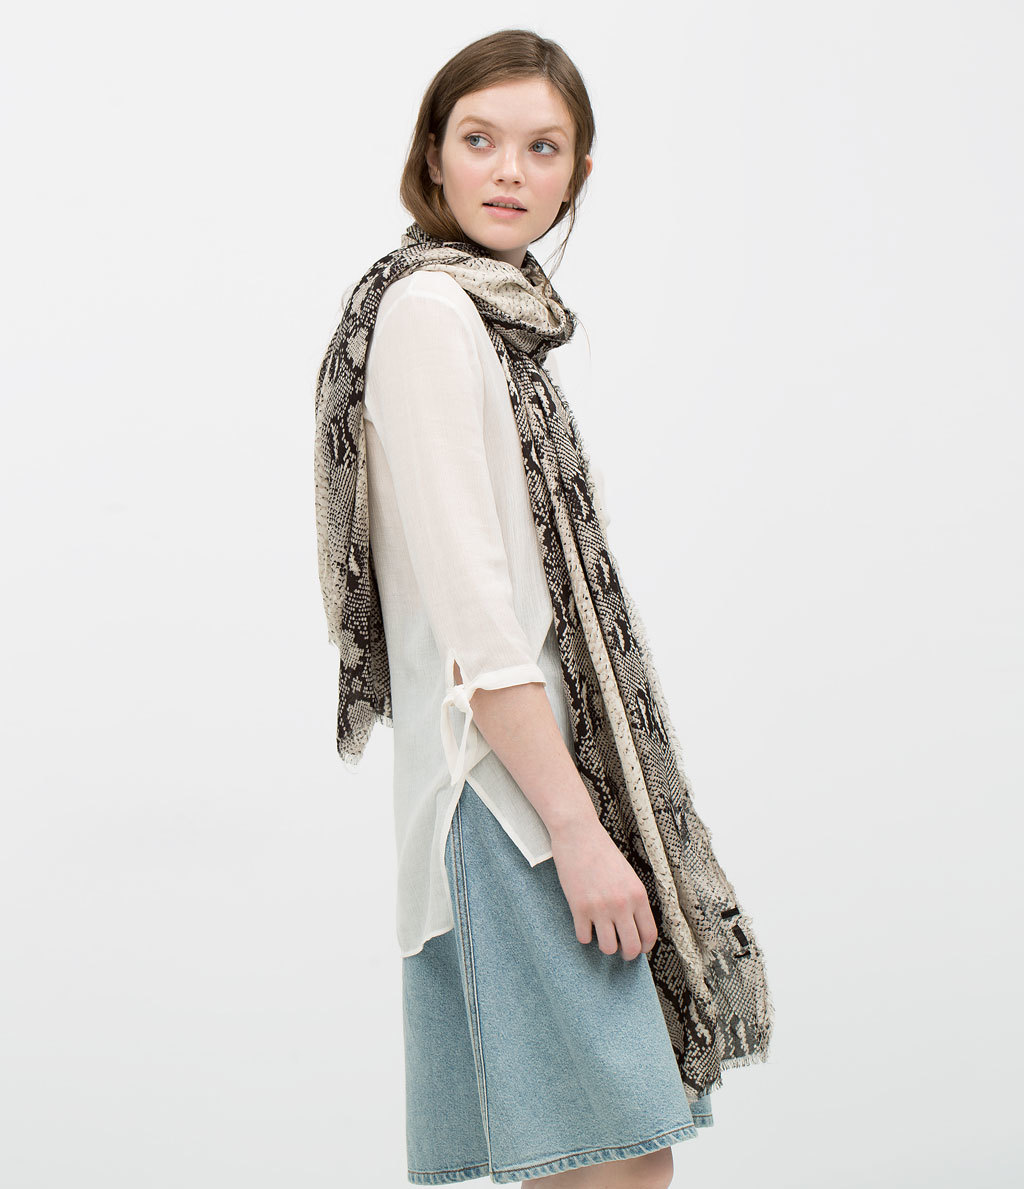 Snake Print Scarf - predominant colour: stone; secondary colour: charcoal; occasions: casual, creative work; type of pattern: heavy; style: regular; size: standard; material: fabric; pattern: animal print; season: s/s 2015; wardrobe: highlight